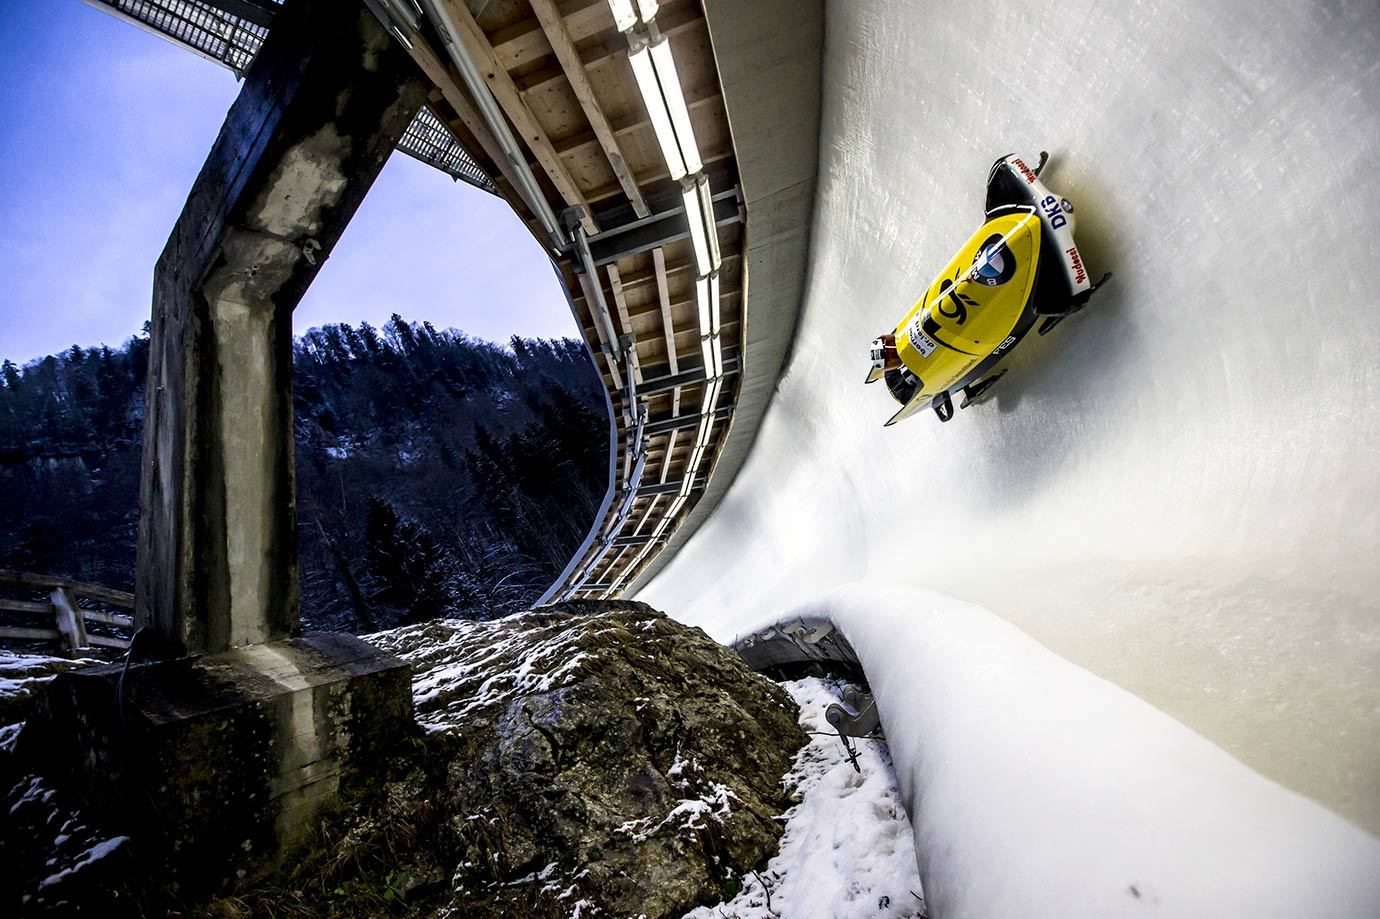 Pilot Miriam Jamaica and her pusher Franziska Bertels of Germany compete in their first run of the women's bobsled competition during the BMW IBSF Bob & Skeleton World Cup in Koenigsee, Germany.